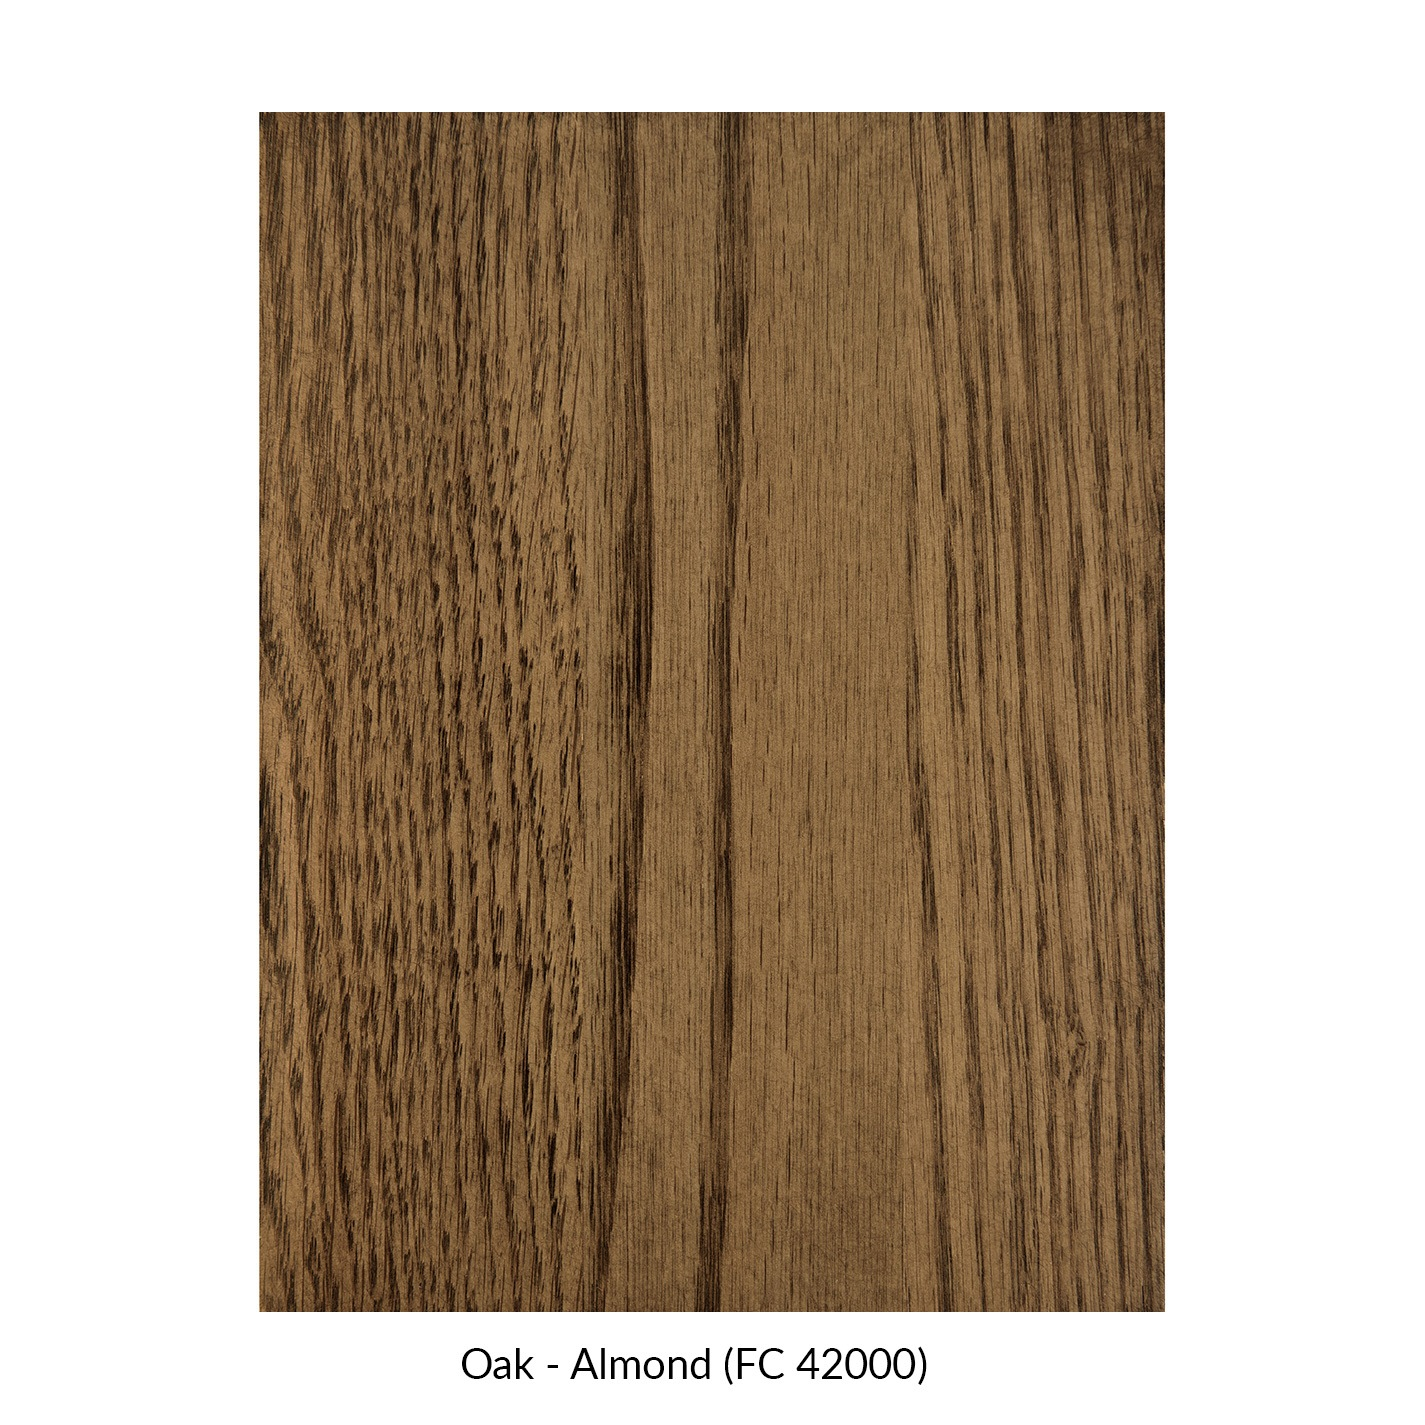 spectrum-oak-almond-fc-42000.jpg